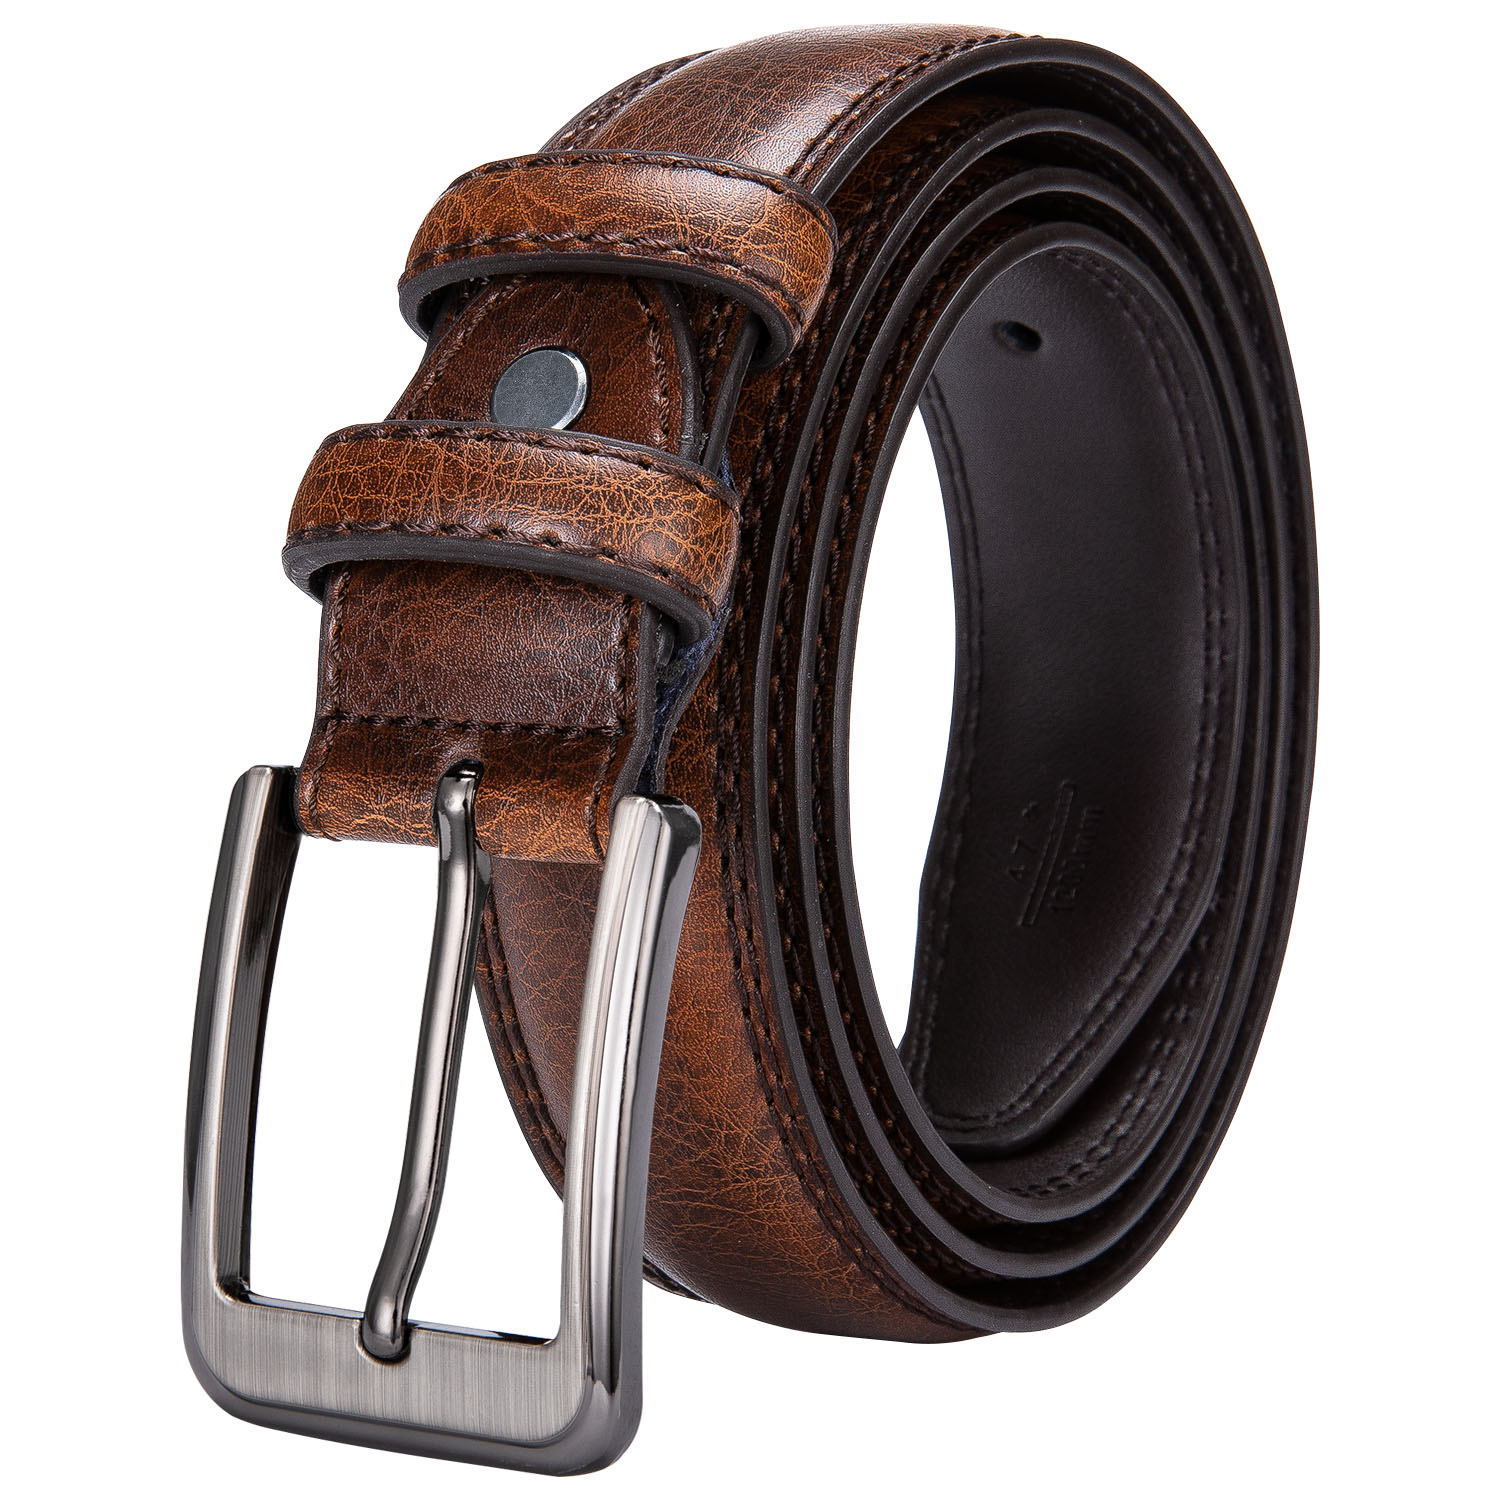 Genuine Leather   Belt   Alloy Pin Buckle Luxury   Belt   Barry.Wang Fashion High Quality Brown And Blue Waist   Belts   For Men SZ-2001